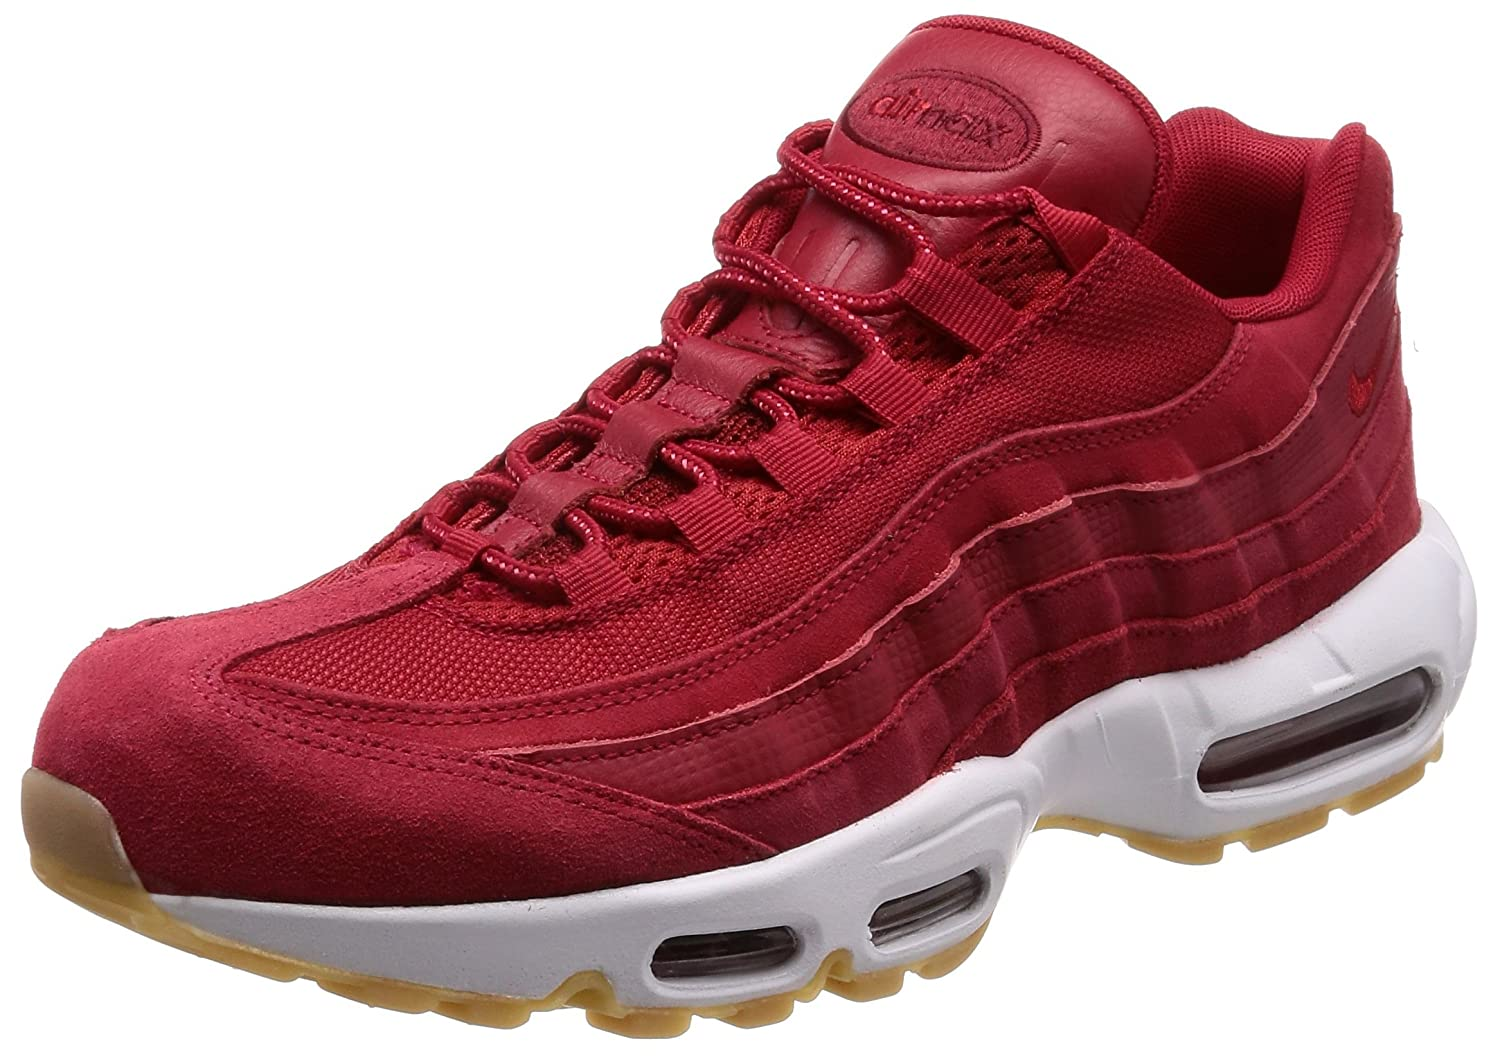 cheap for discount a1507 67ef8 Amazon.com | Nike Men's Air Max 95 Premium Sneaker Gym Red ...